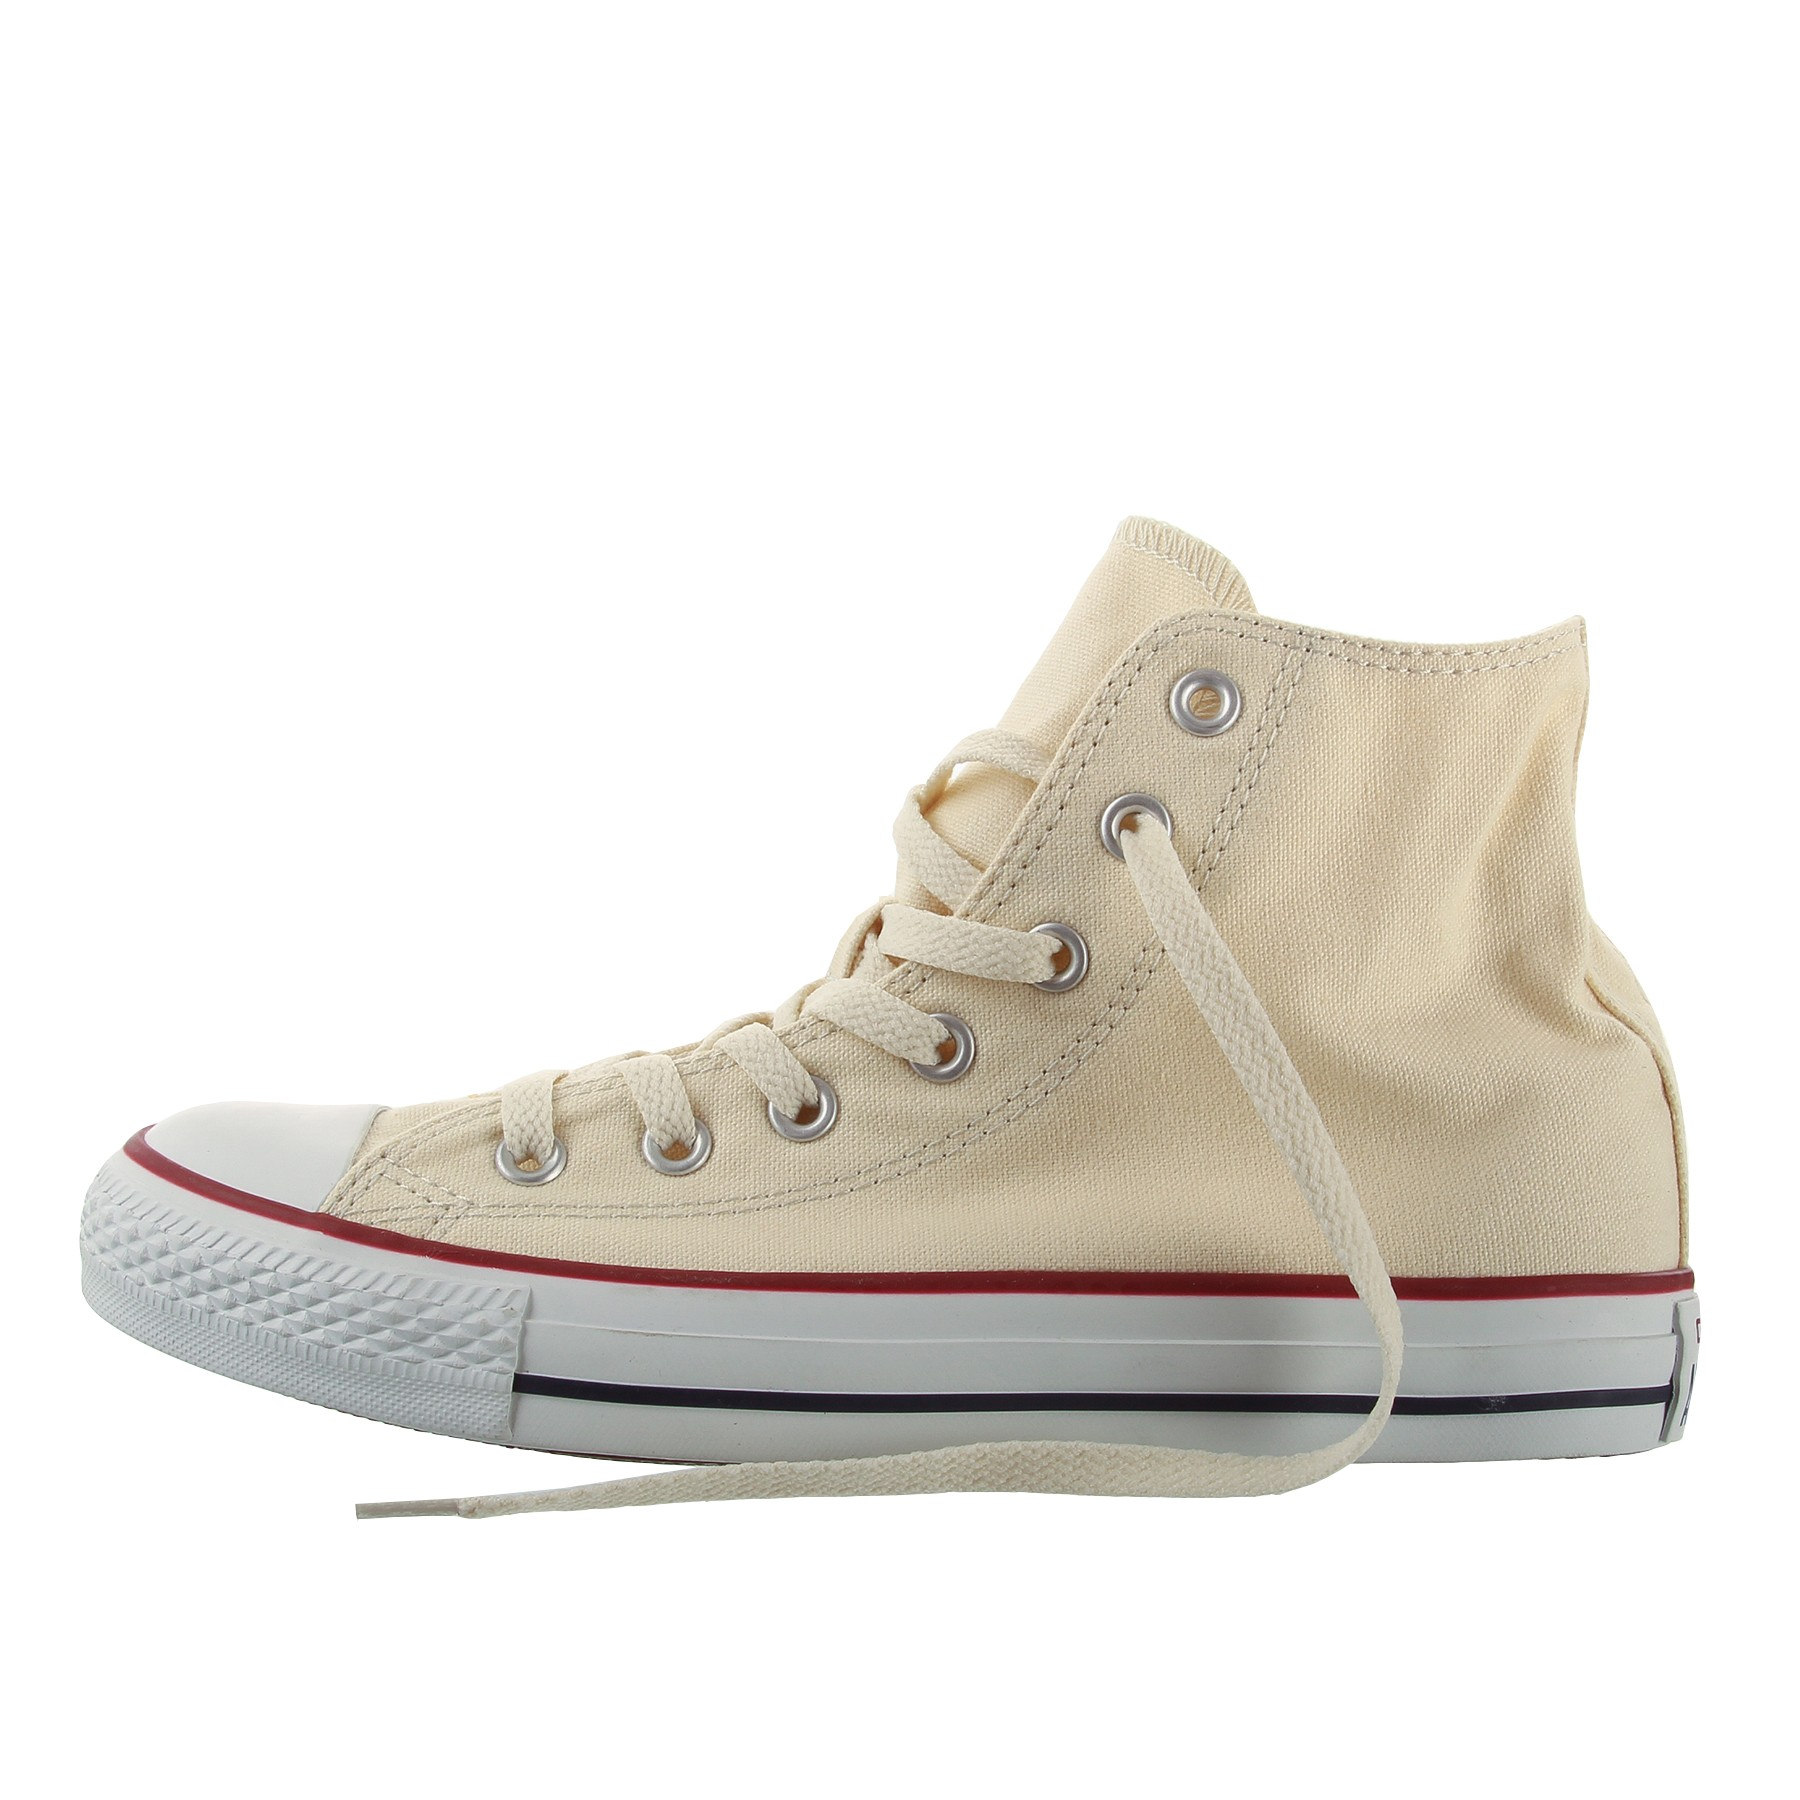 M9162 CT CHUCK TAYLOR AS CORE/ WHITE Bild https://cdn03.plentymarkets.com/zsy4vjx32p87/item/images/4257/full/M9162-ama-02.JPG